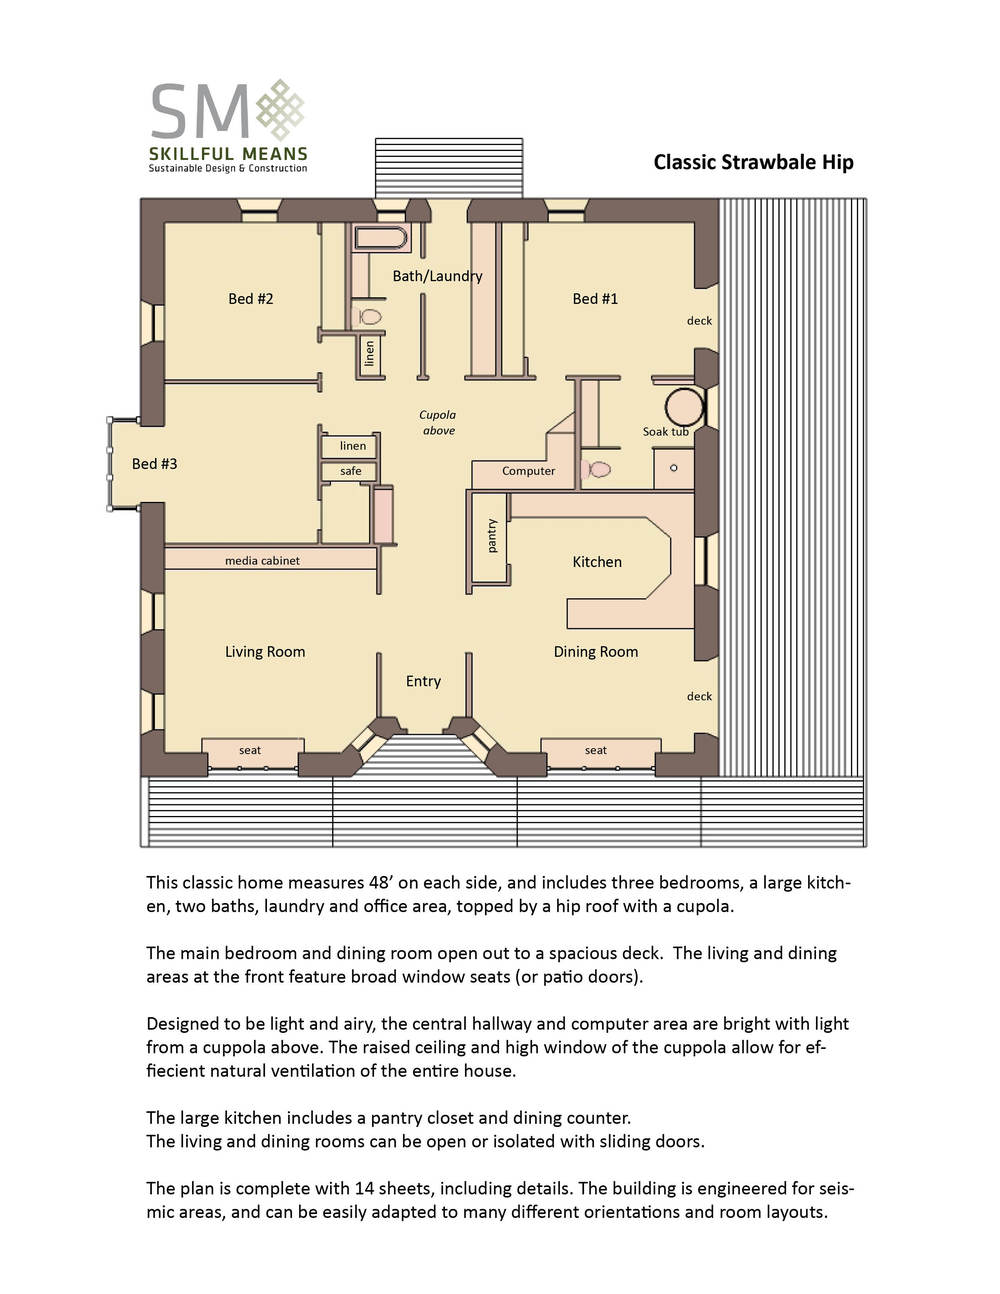 Perfect House Plans Classic Strawbale Hip